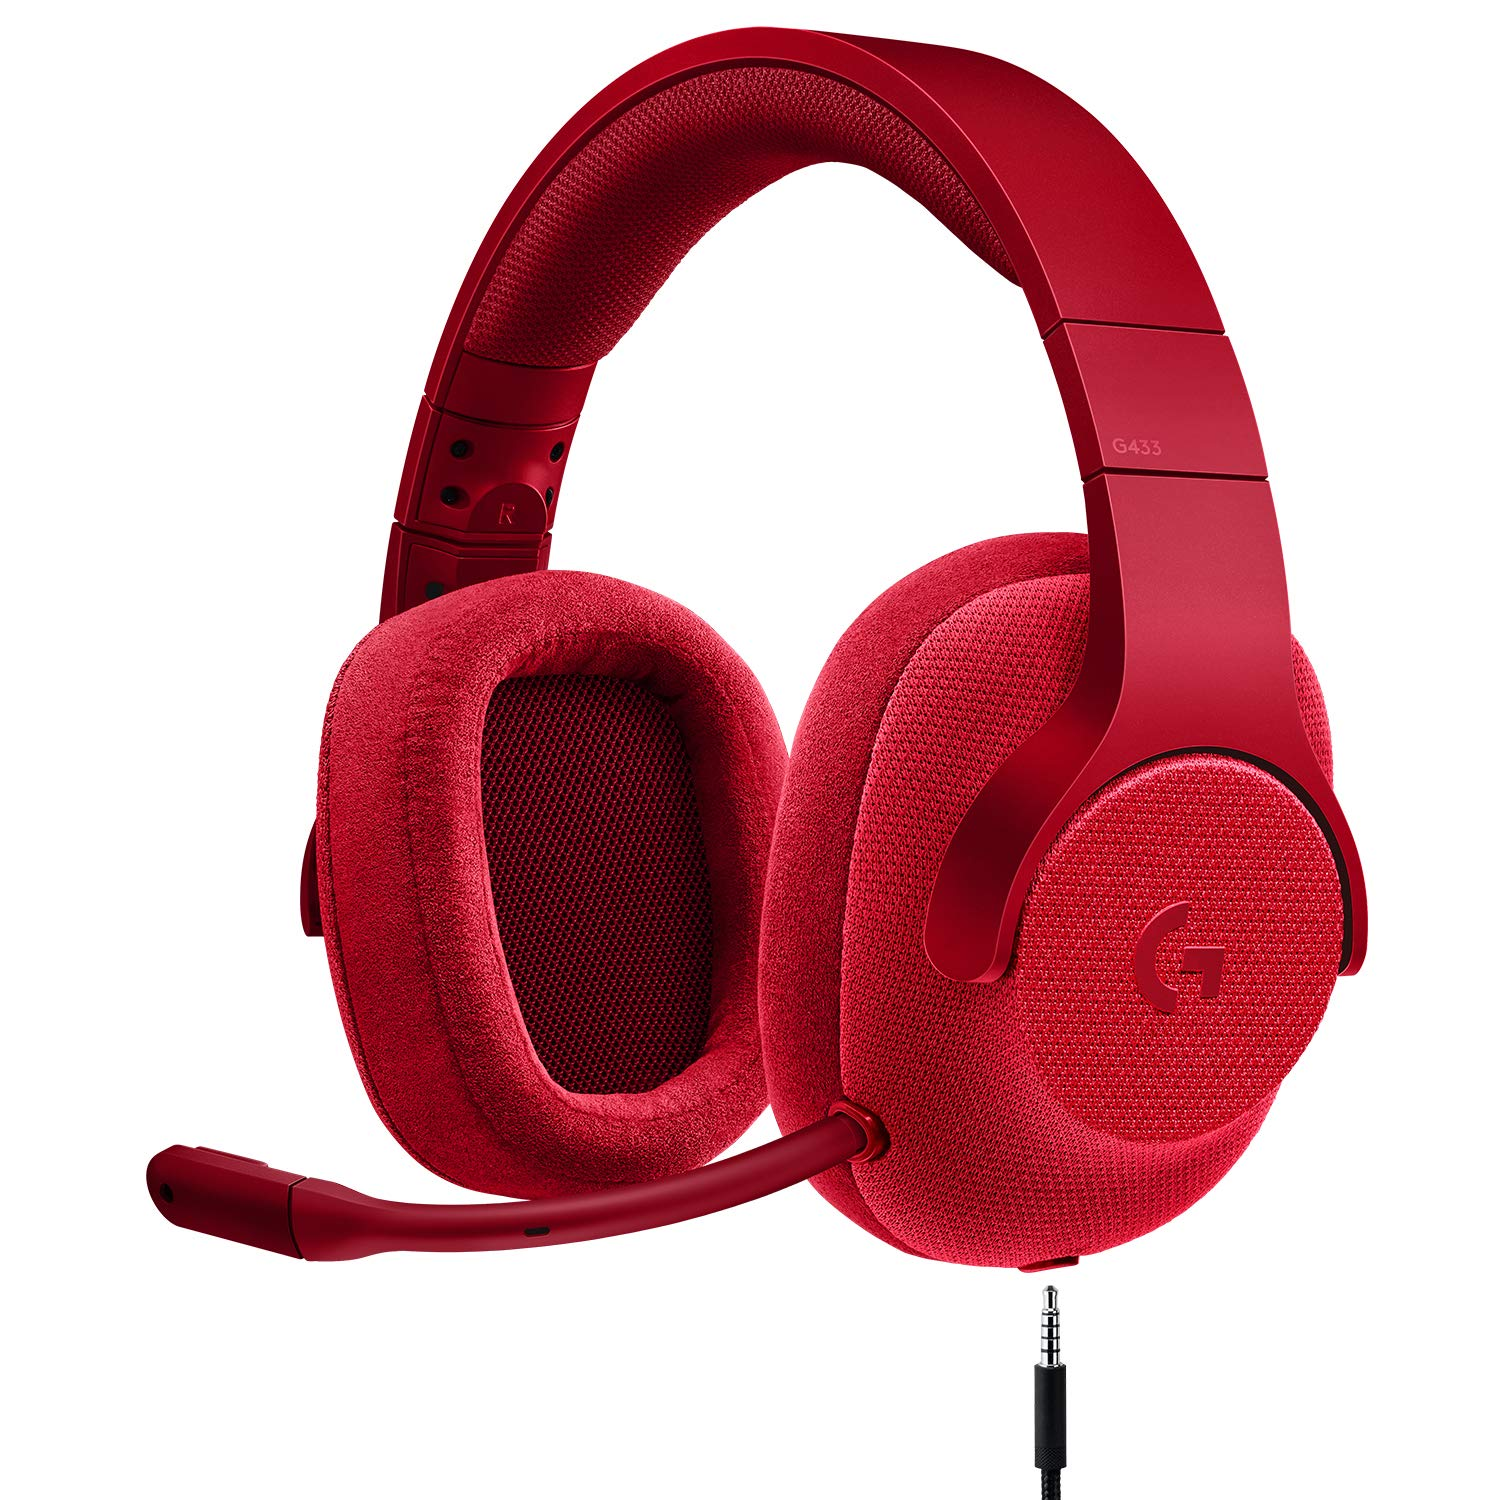 Logitech G433 7 1 Wired Gaming Headset with DTS Headphone: X 7 1 Surround  for PC, PS4, PS4 PRO, Xbox One, Xbox One S, Nintendo Switch – Fire Red